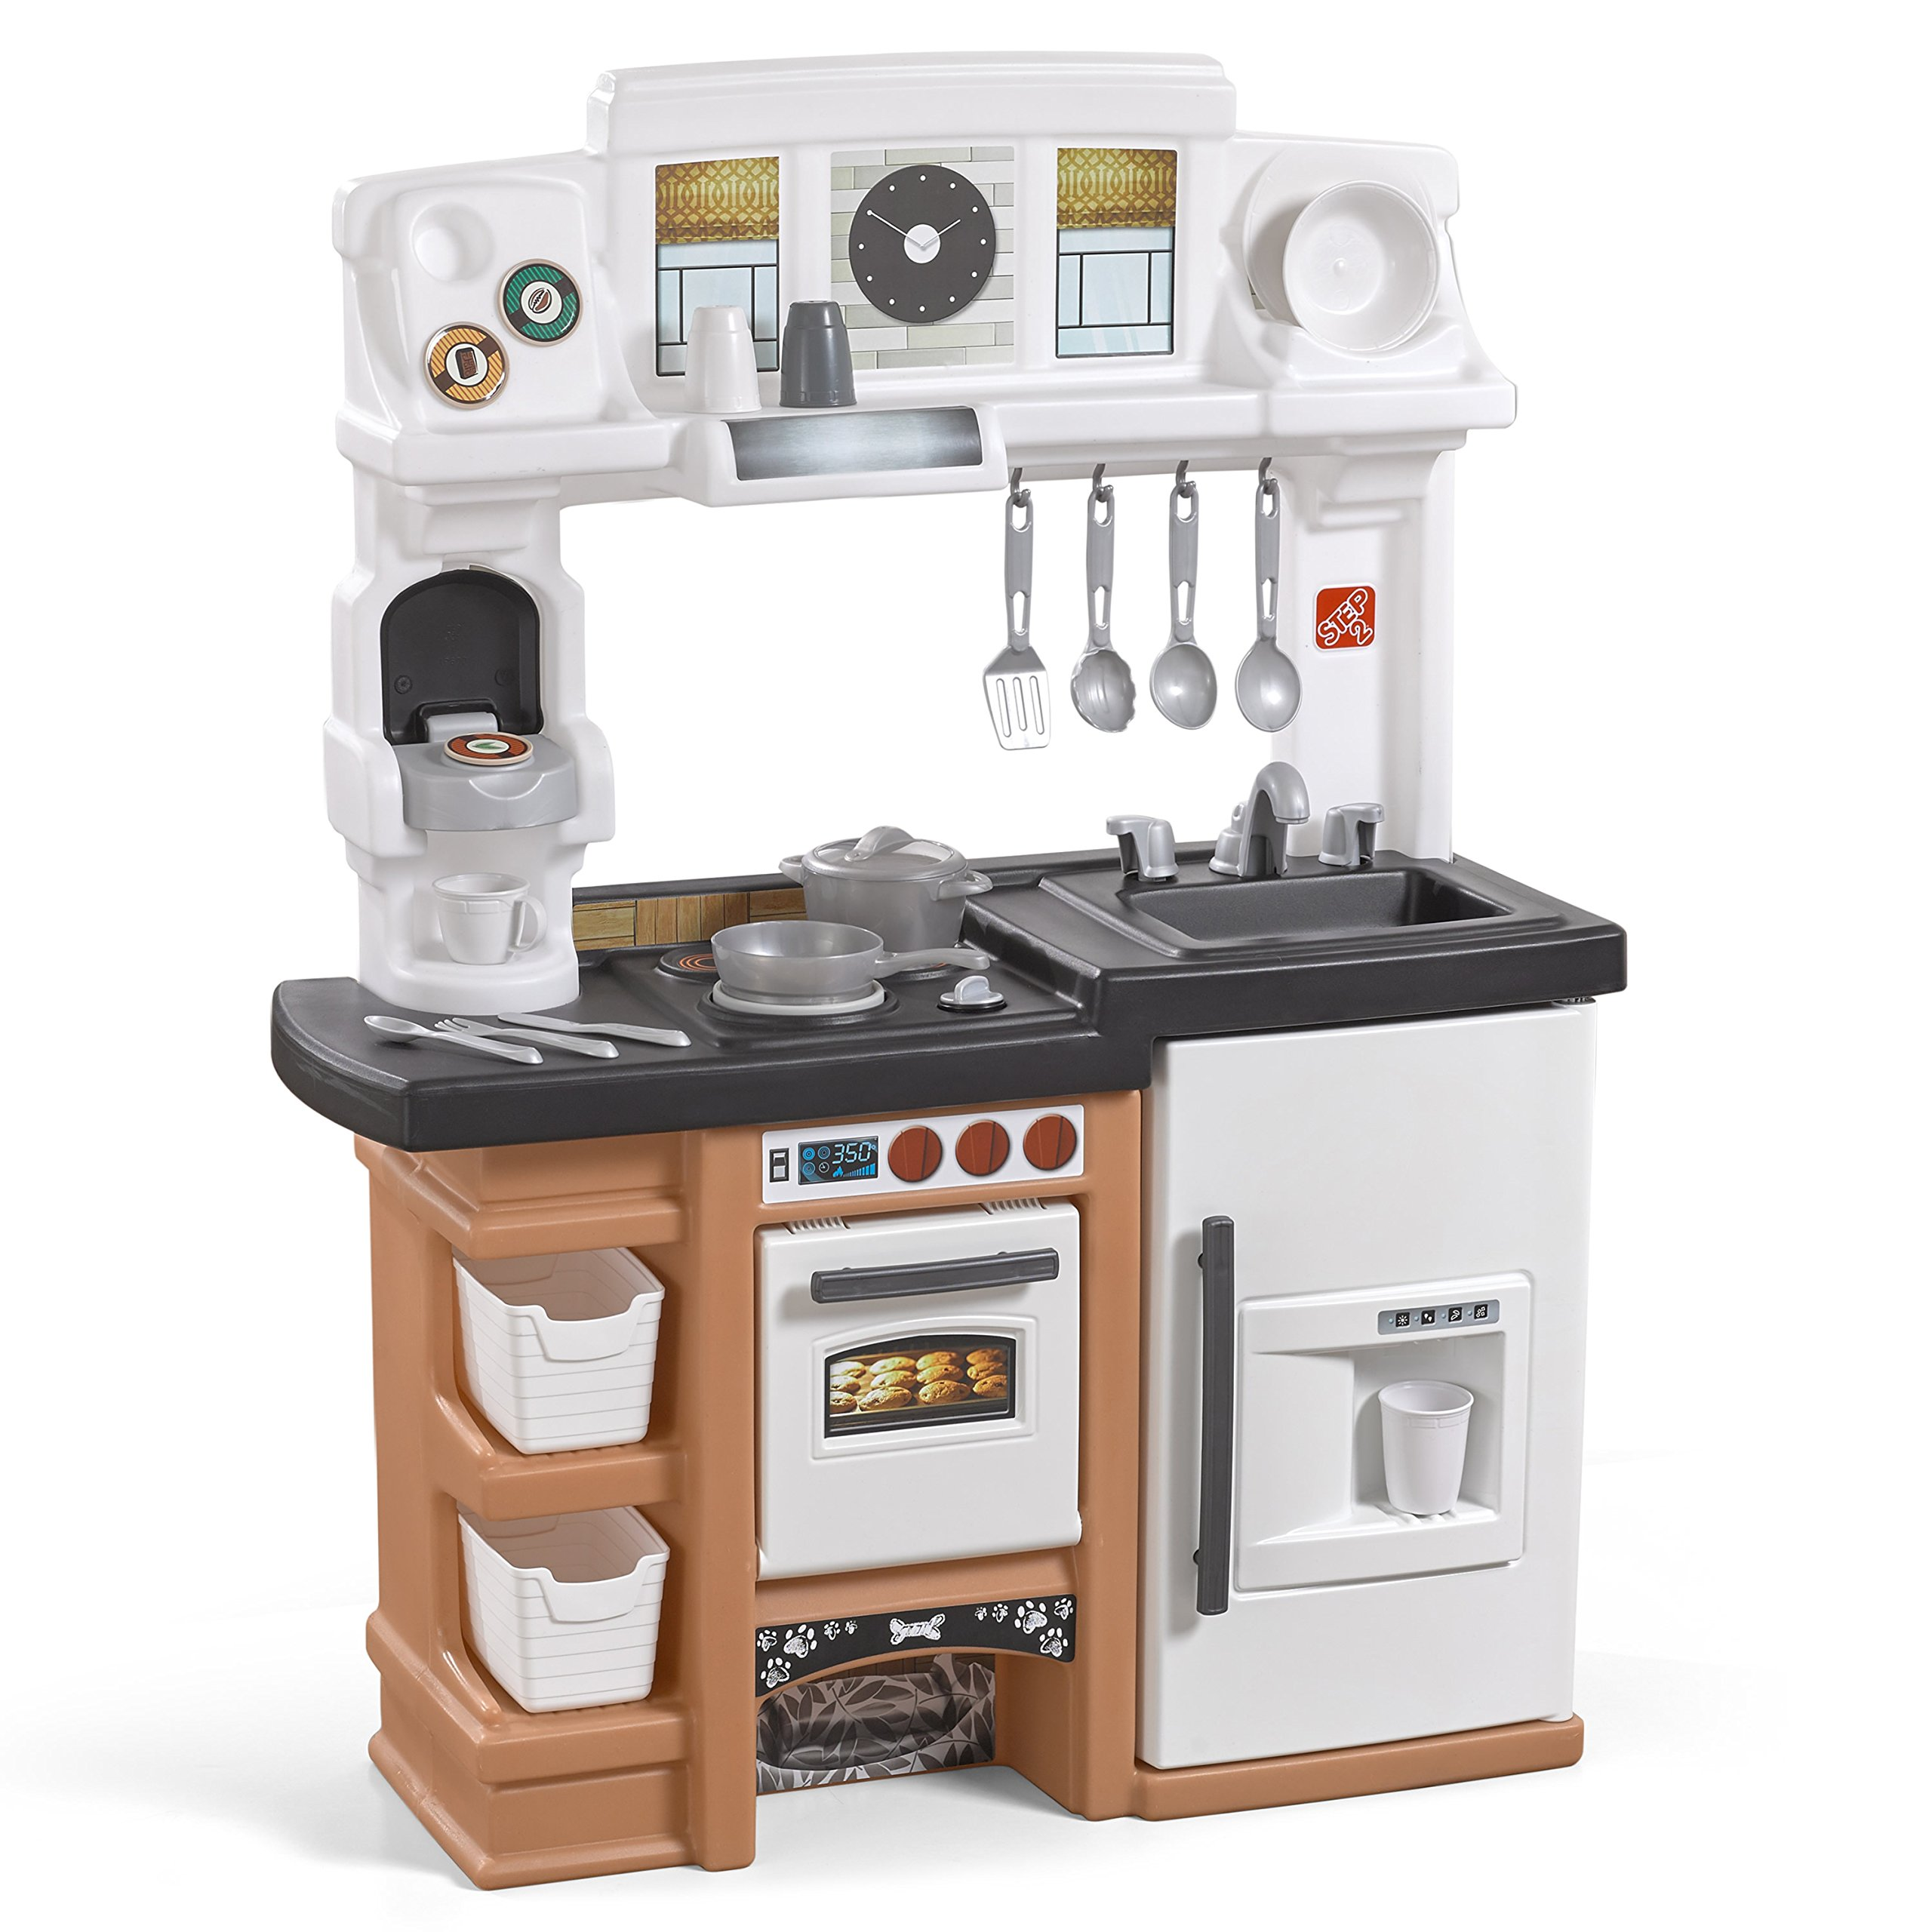 Step2 899399 Espresso Bar Play Kitchen for Kids, Tan by Step2